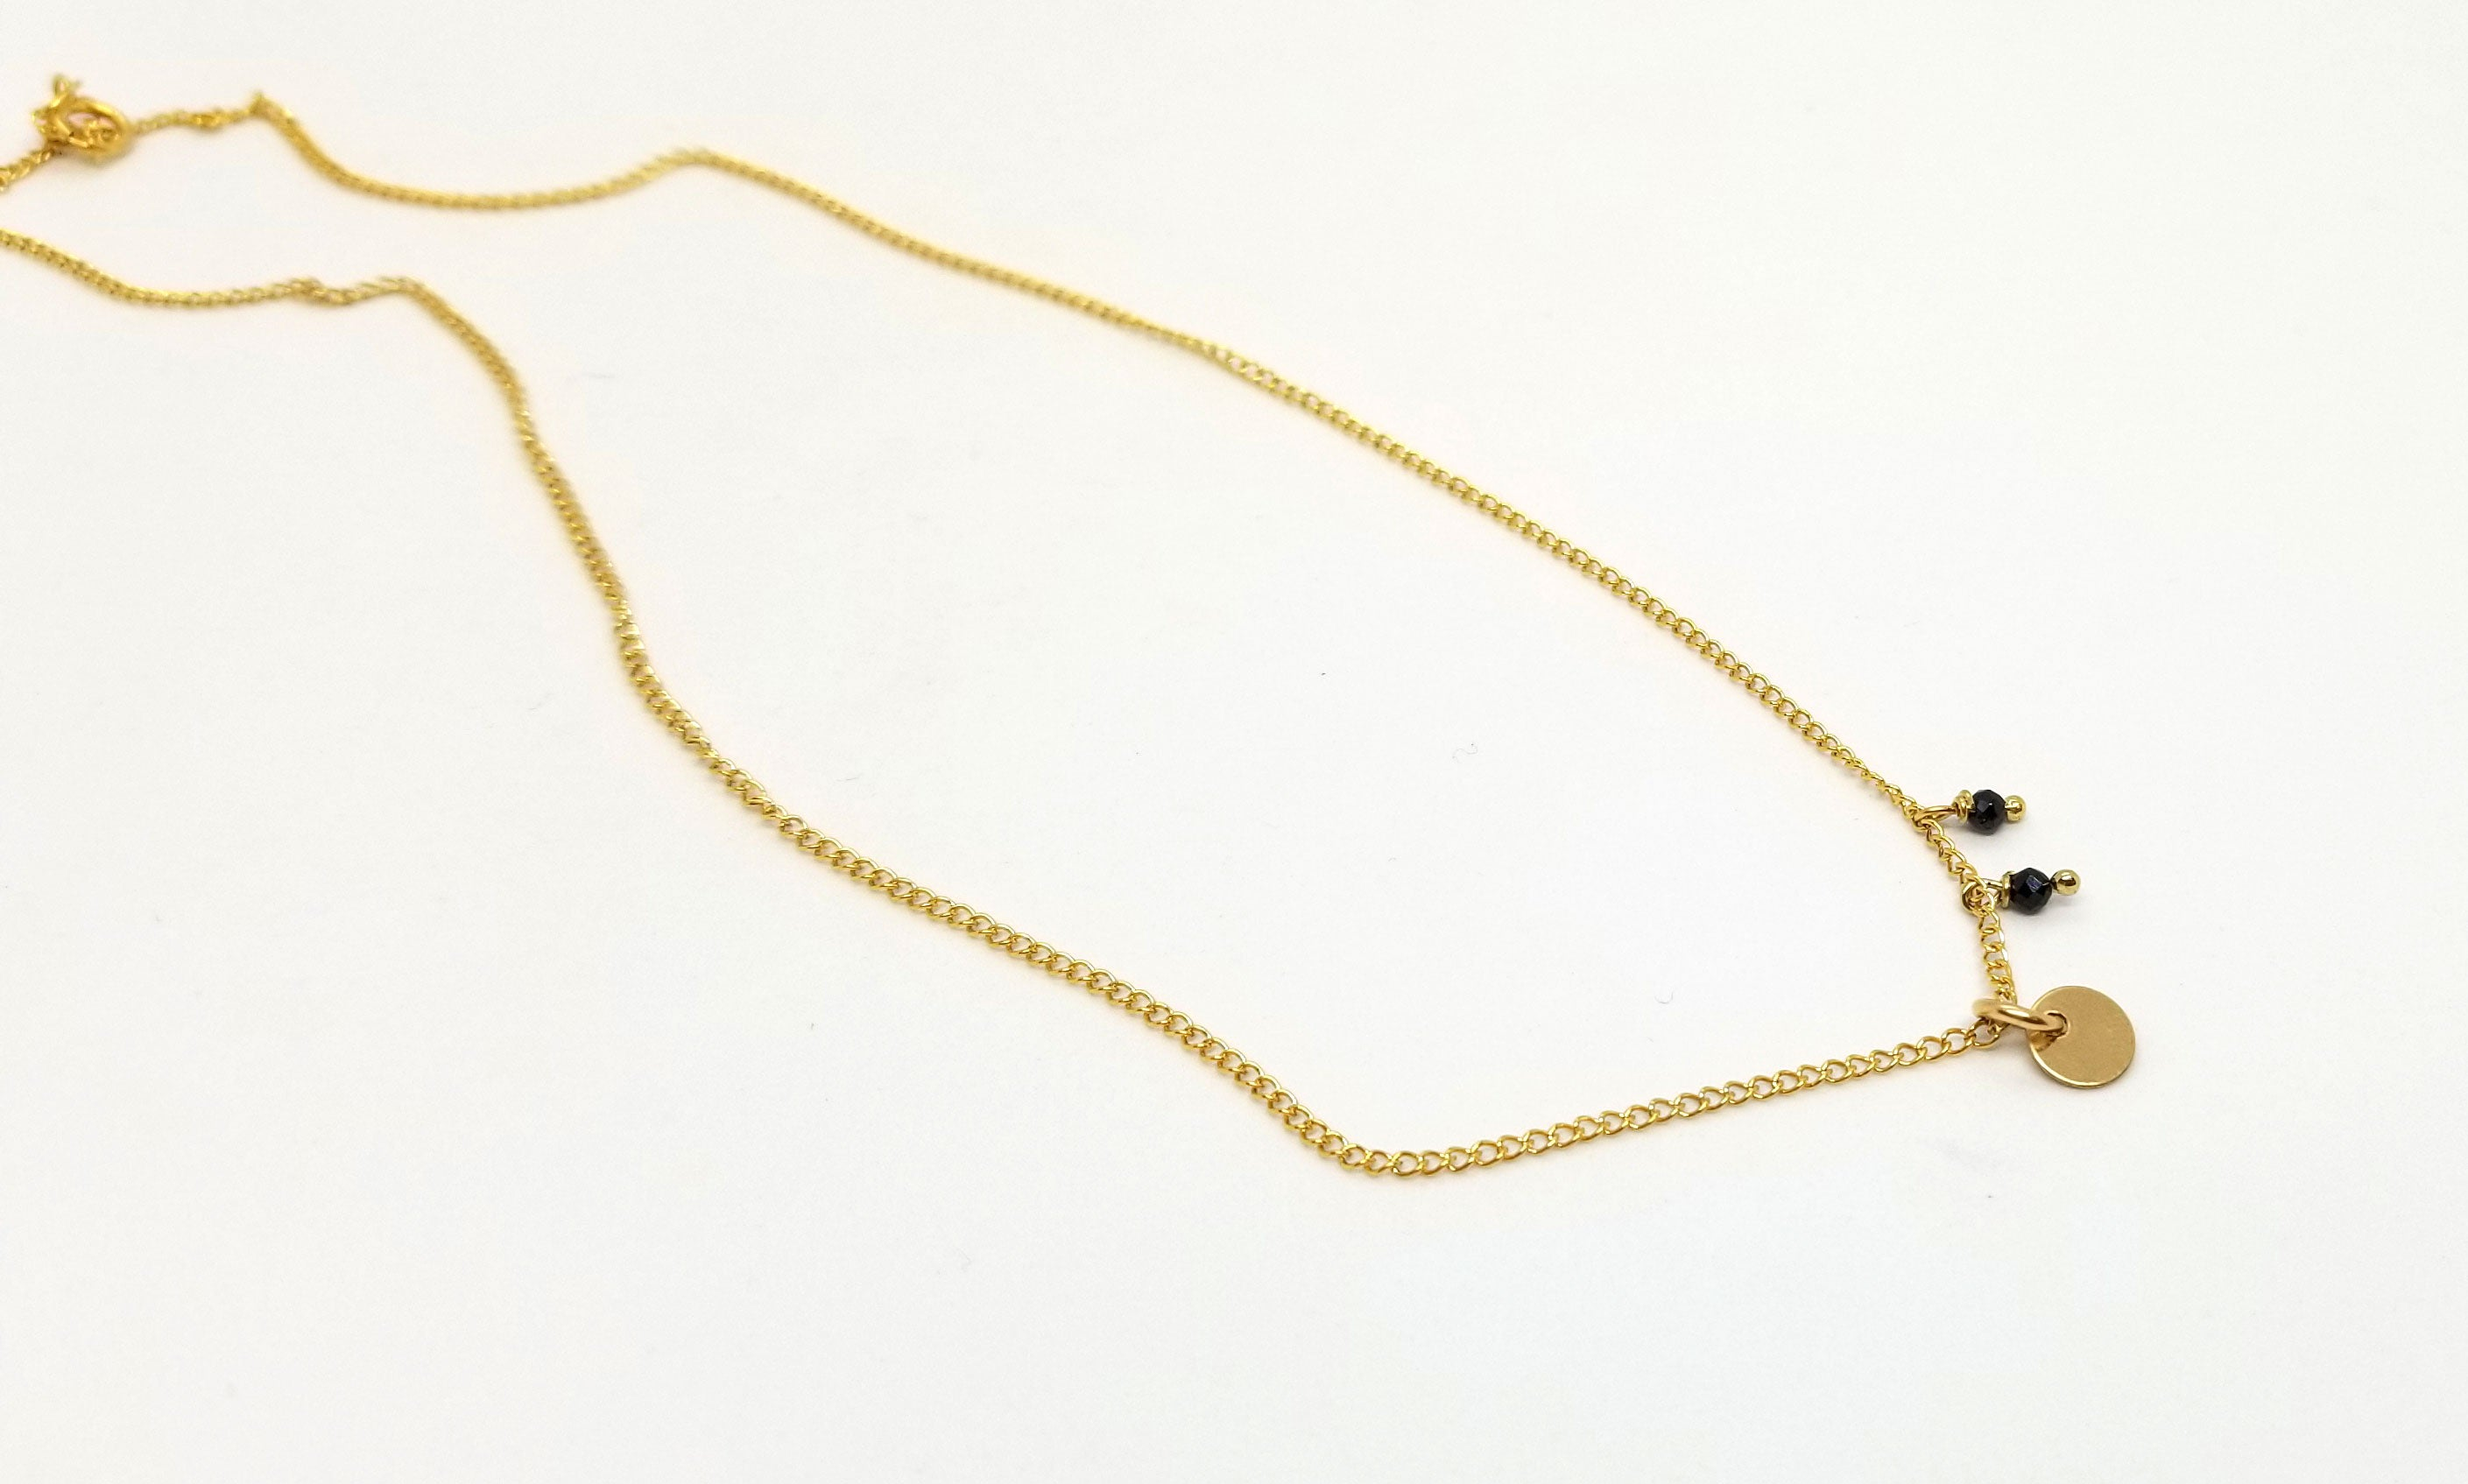 The Kimberly Gold Necklace